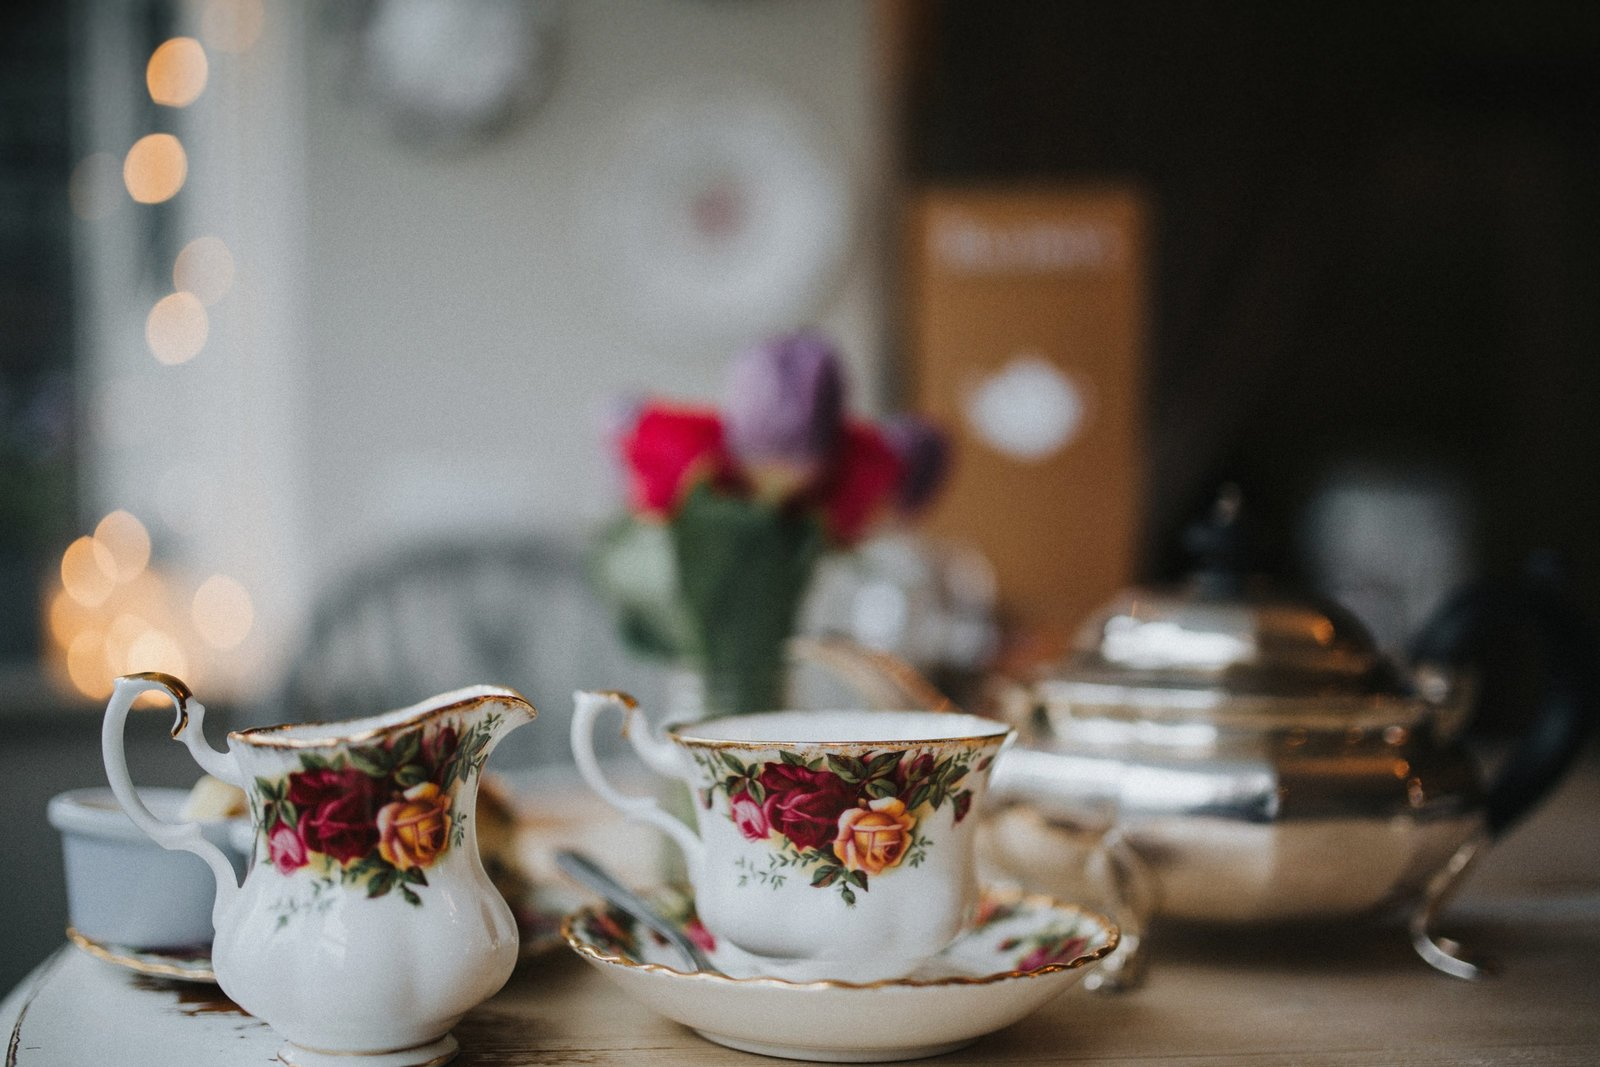 Vintage crockery and teapot at Baldry's Tearoom in the Lake District